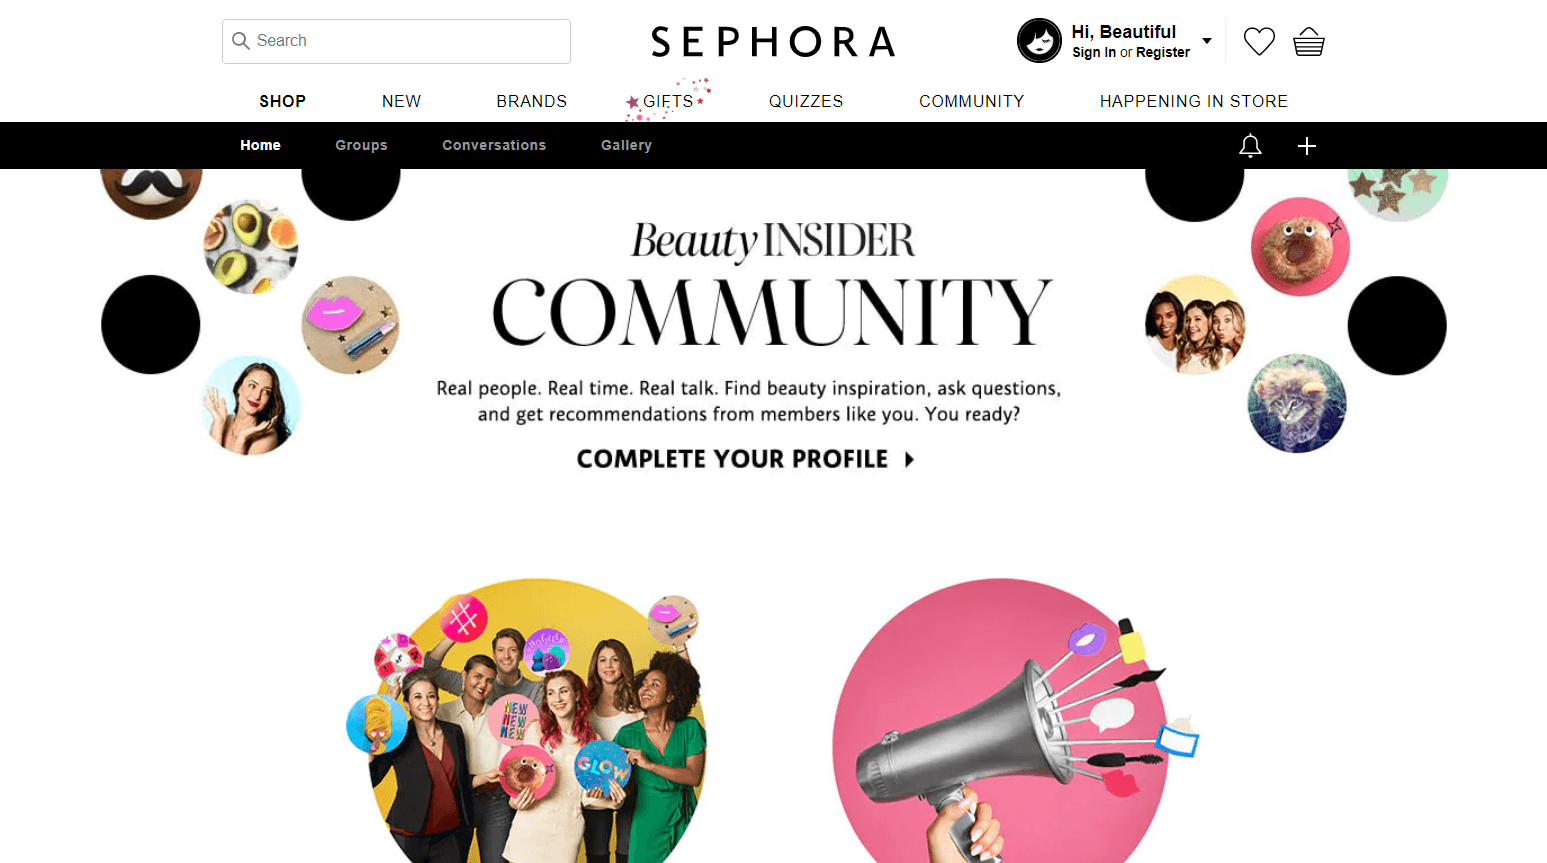 Sephora Ecommerce Content Marketing Examples